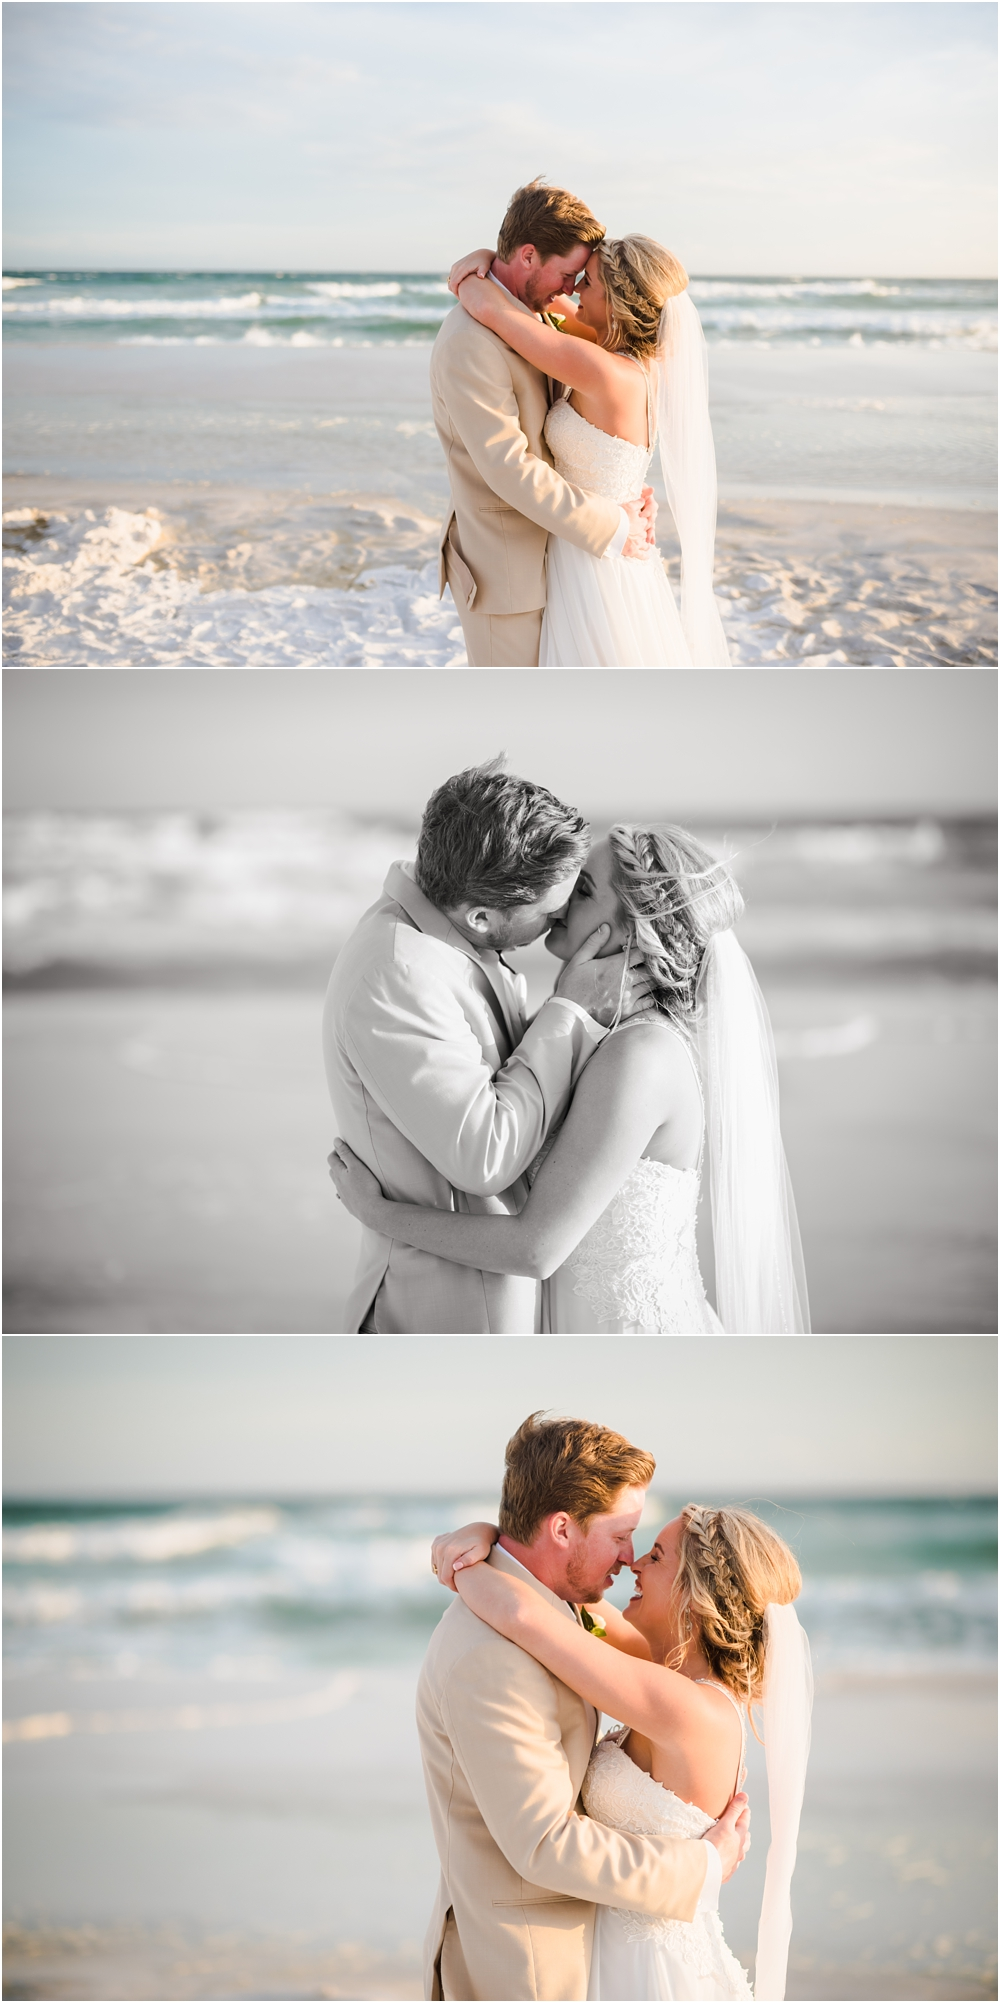 dillard-florida-wedding-photographer-panama-city-beach-dothan-tallahassee-kiersten-grant-photography-144.jpg